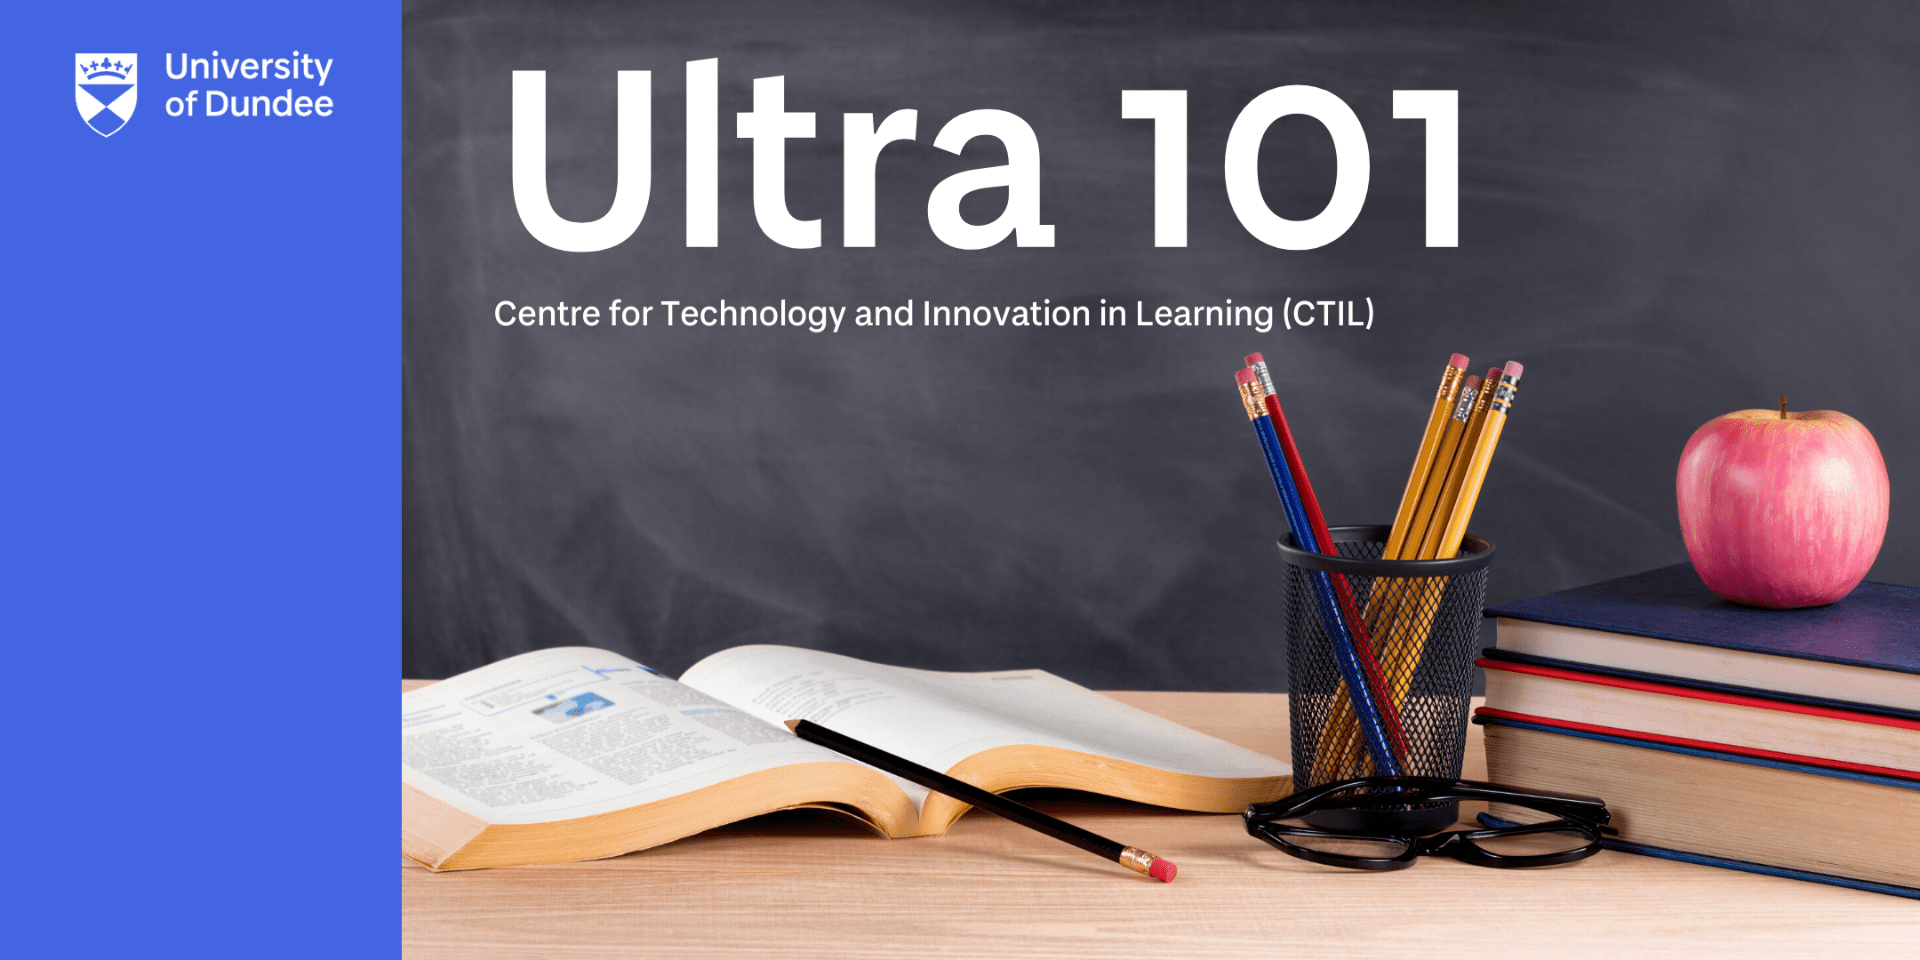 Ultra 101: Centre for Technology and Innovation in Learning (CTIL)